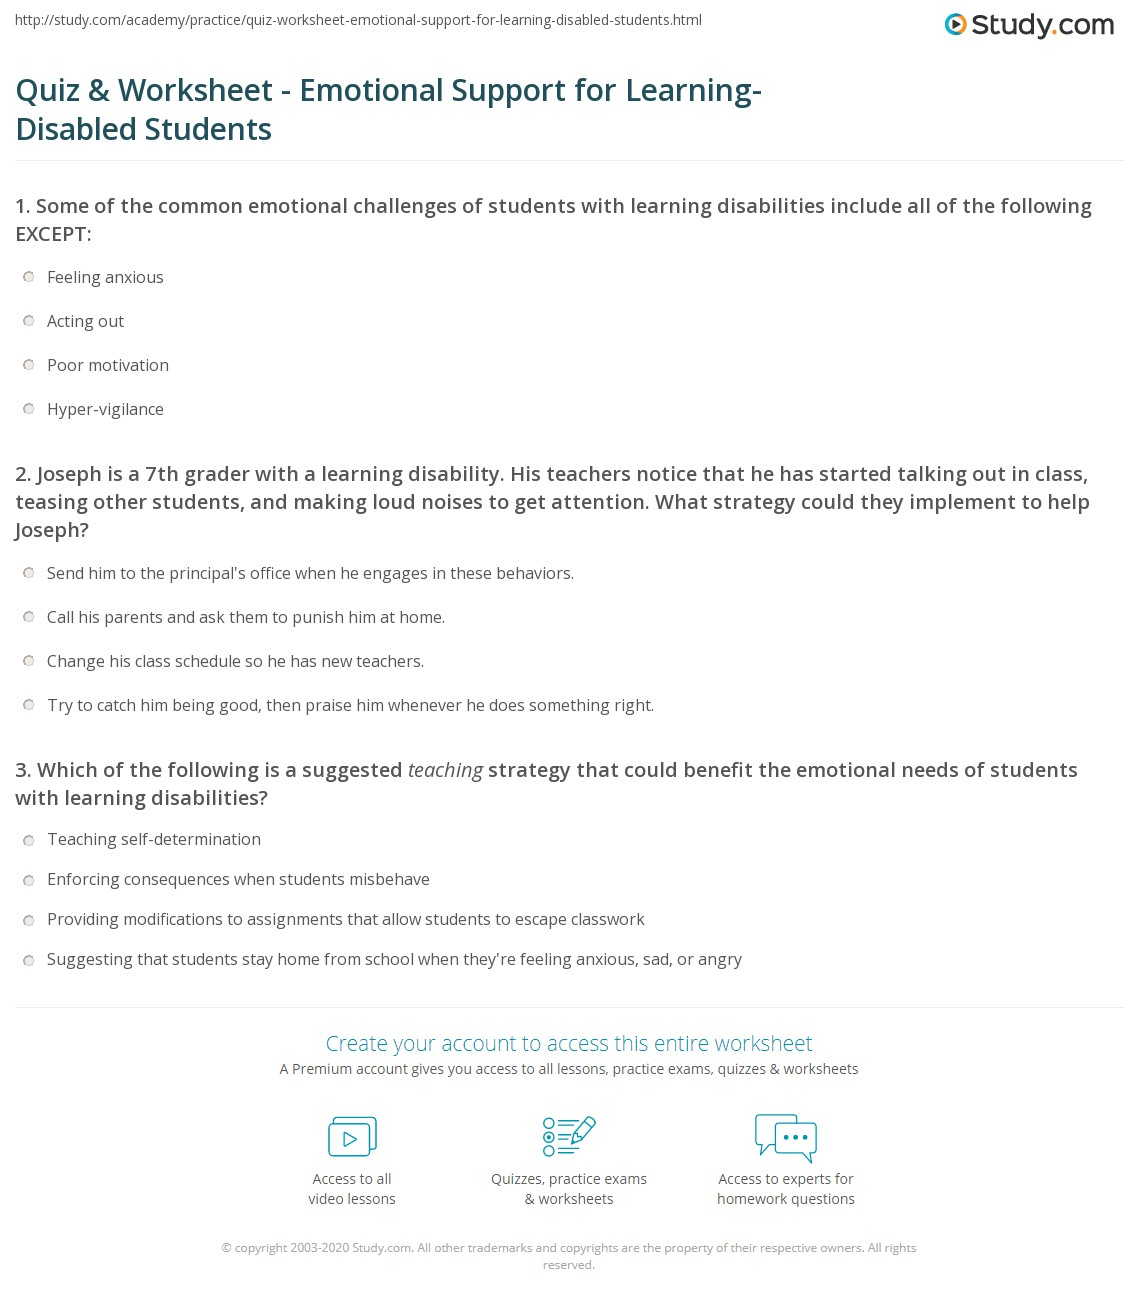 Quiz Worksheet Emotional Support For Learning Disabled Students